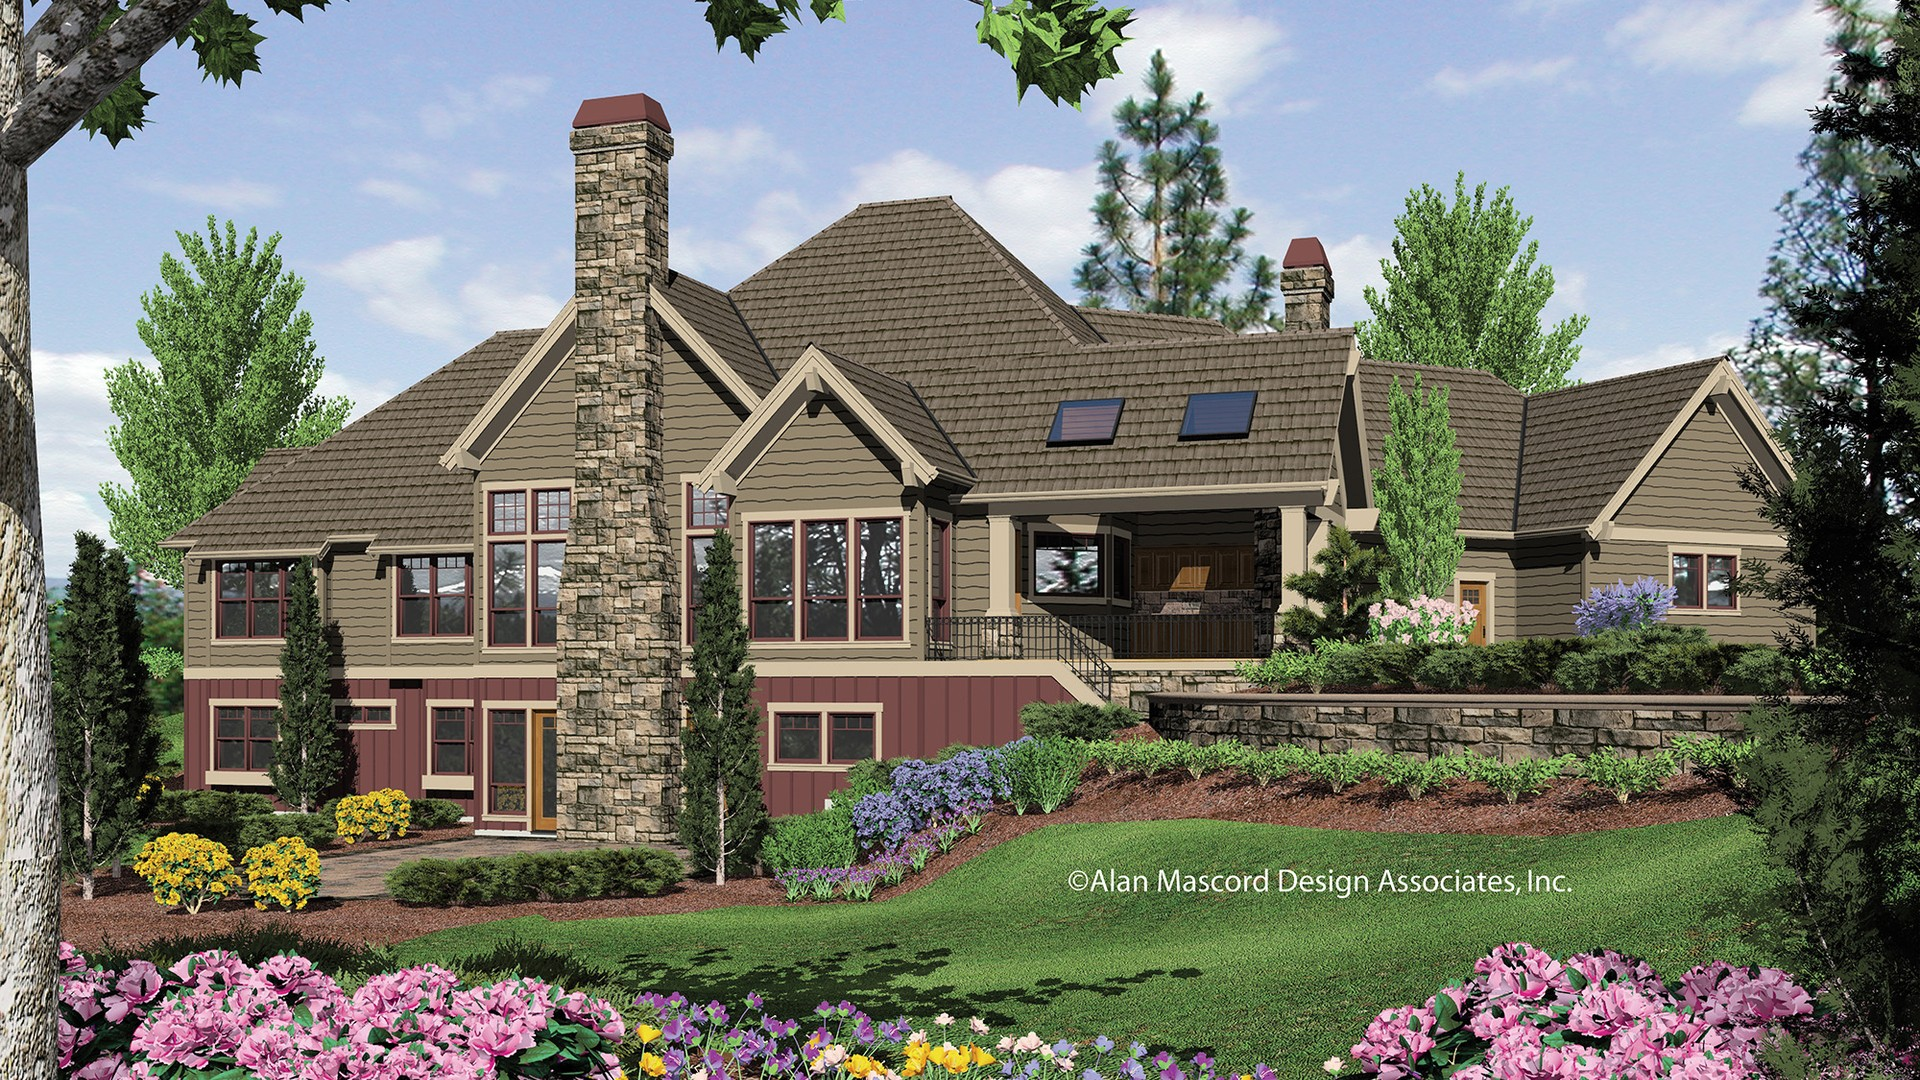 Craftsman House Plan 1411 The Tasseler: 4732 Sqft, 4 Beds